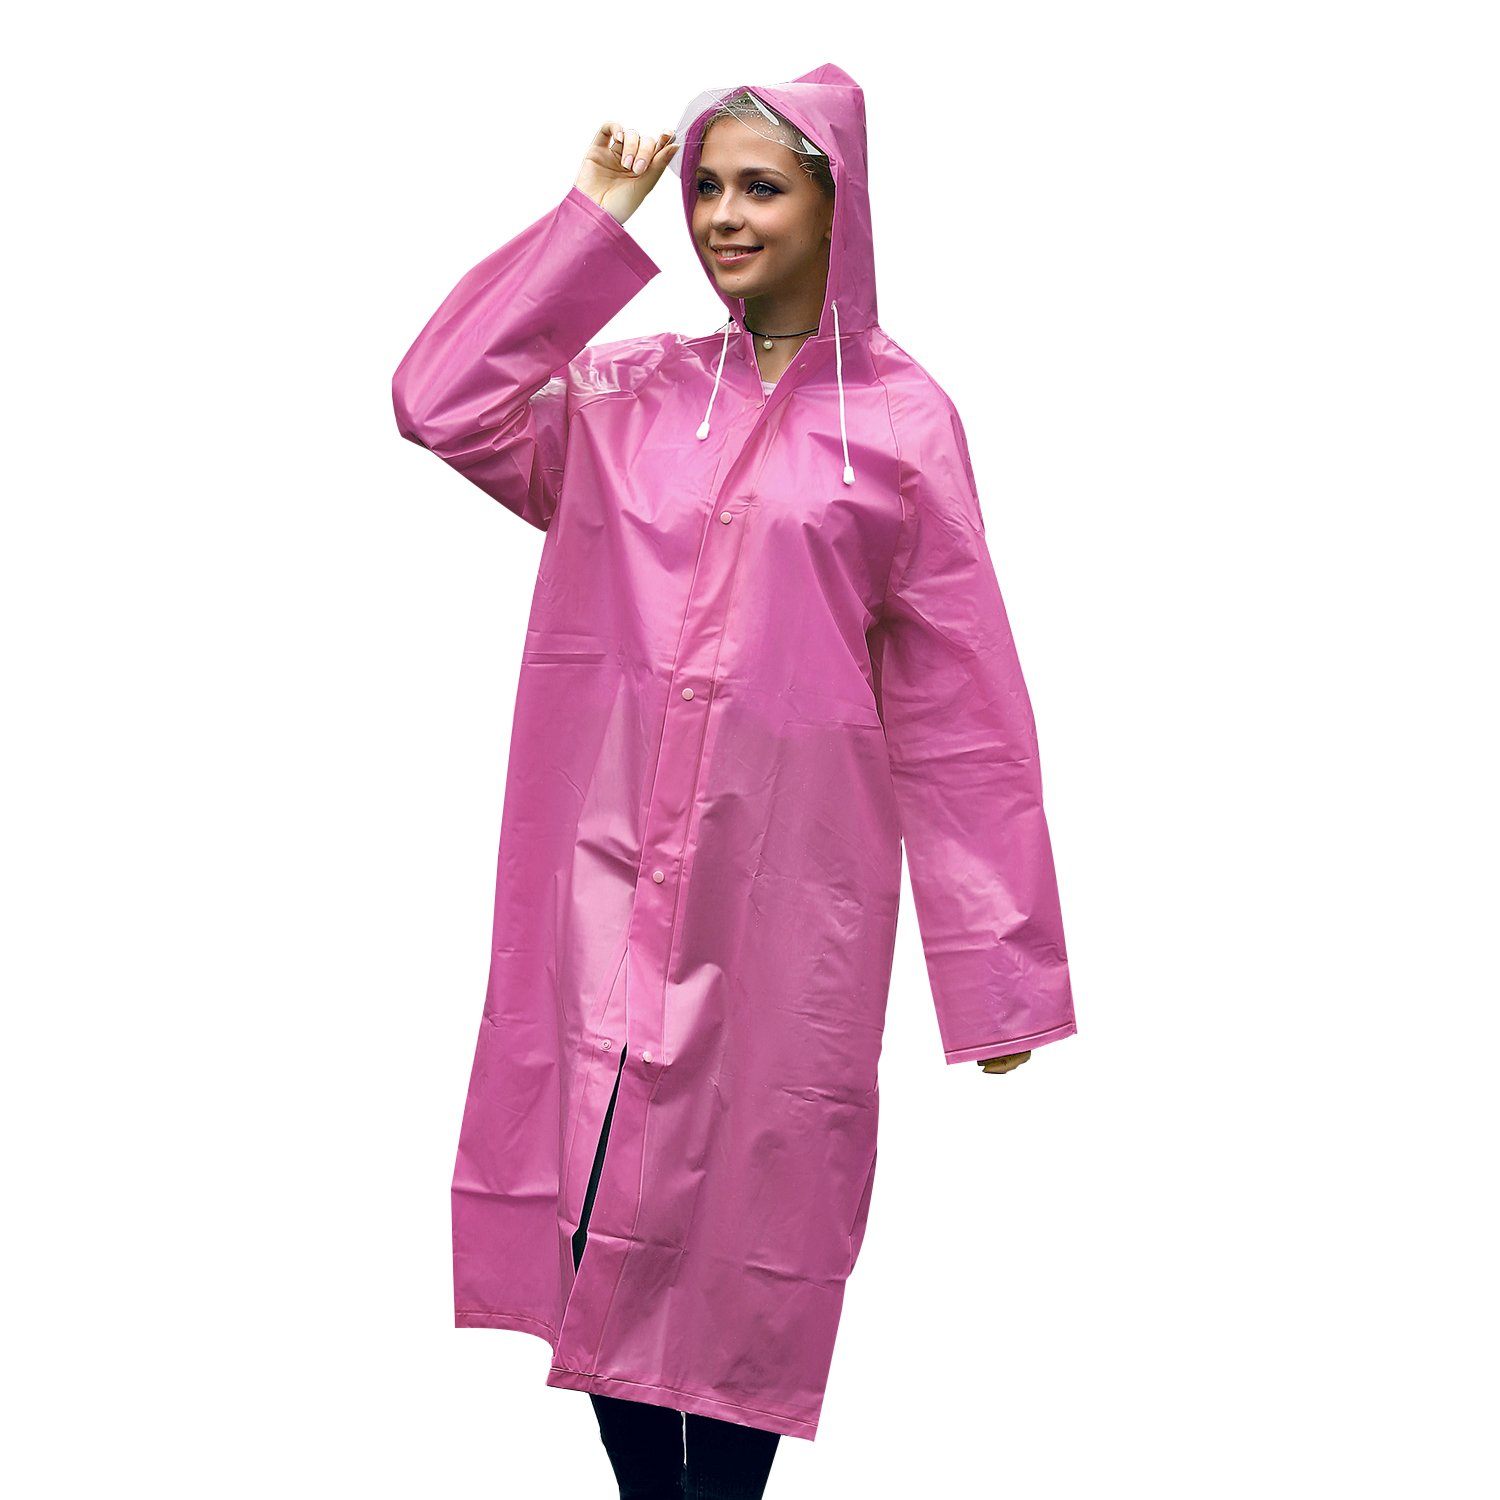 Unigear Portable Raincoat, Lightweight Hooded Rain Ponchos with Sleeves for Adults